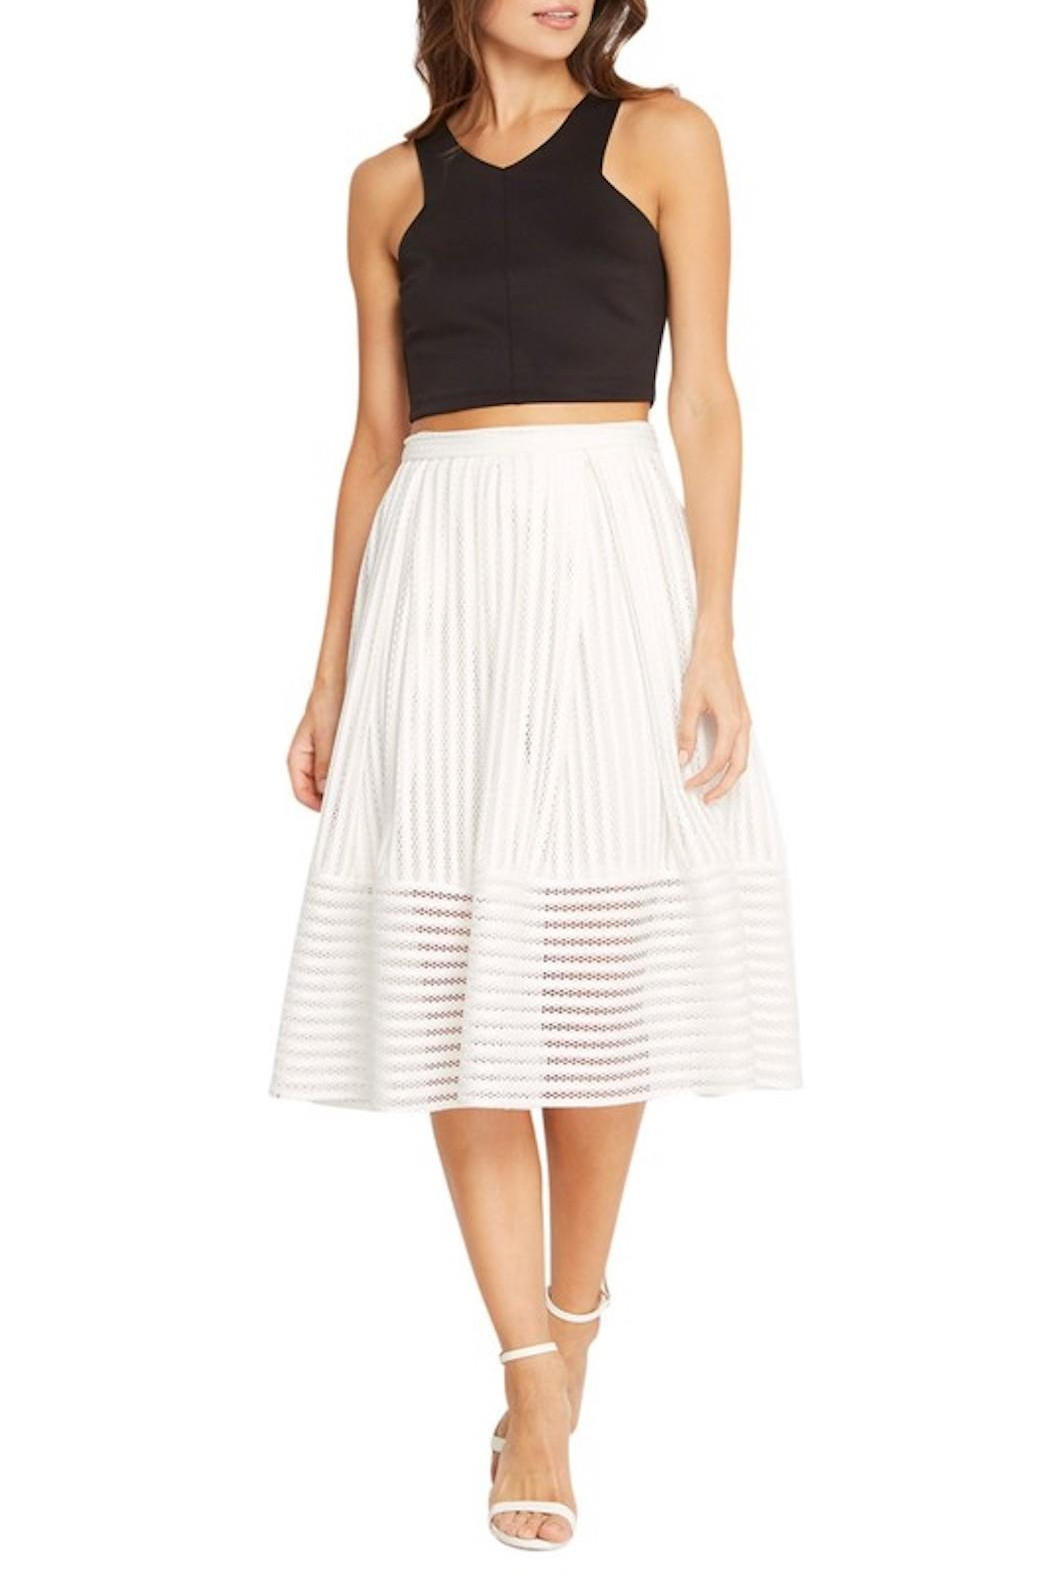 Soprano A-Line White Skirt - Front Cropped Image